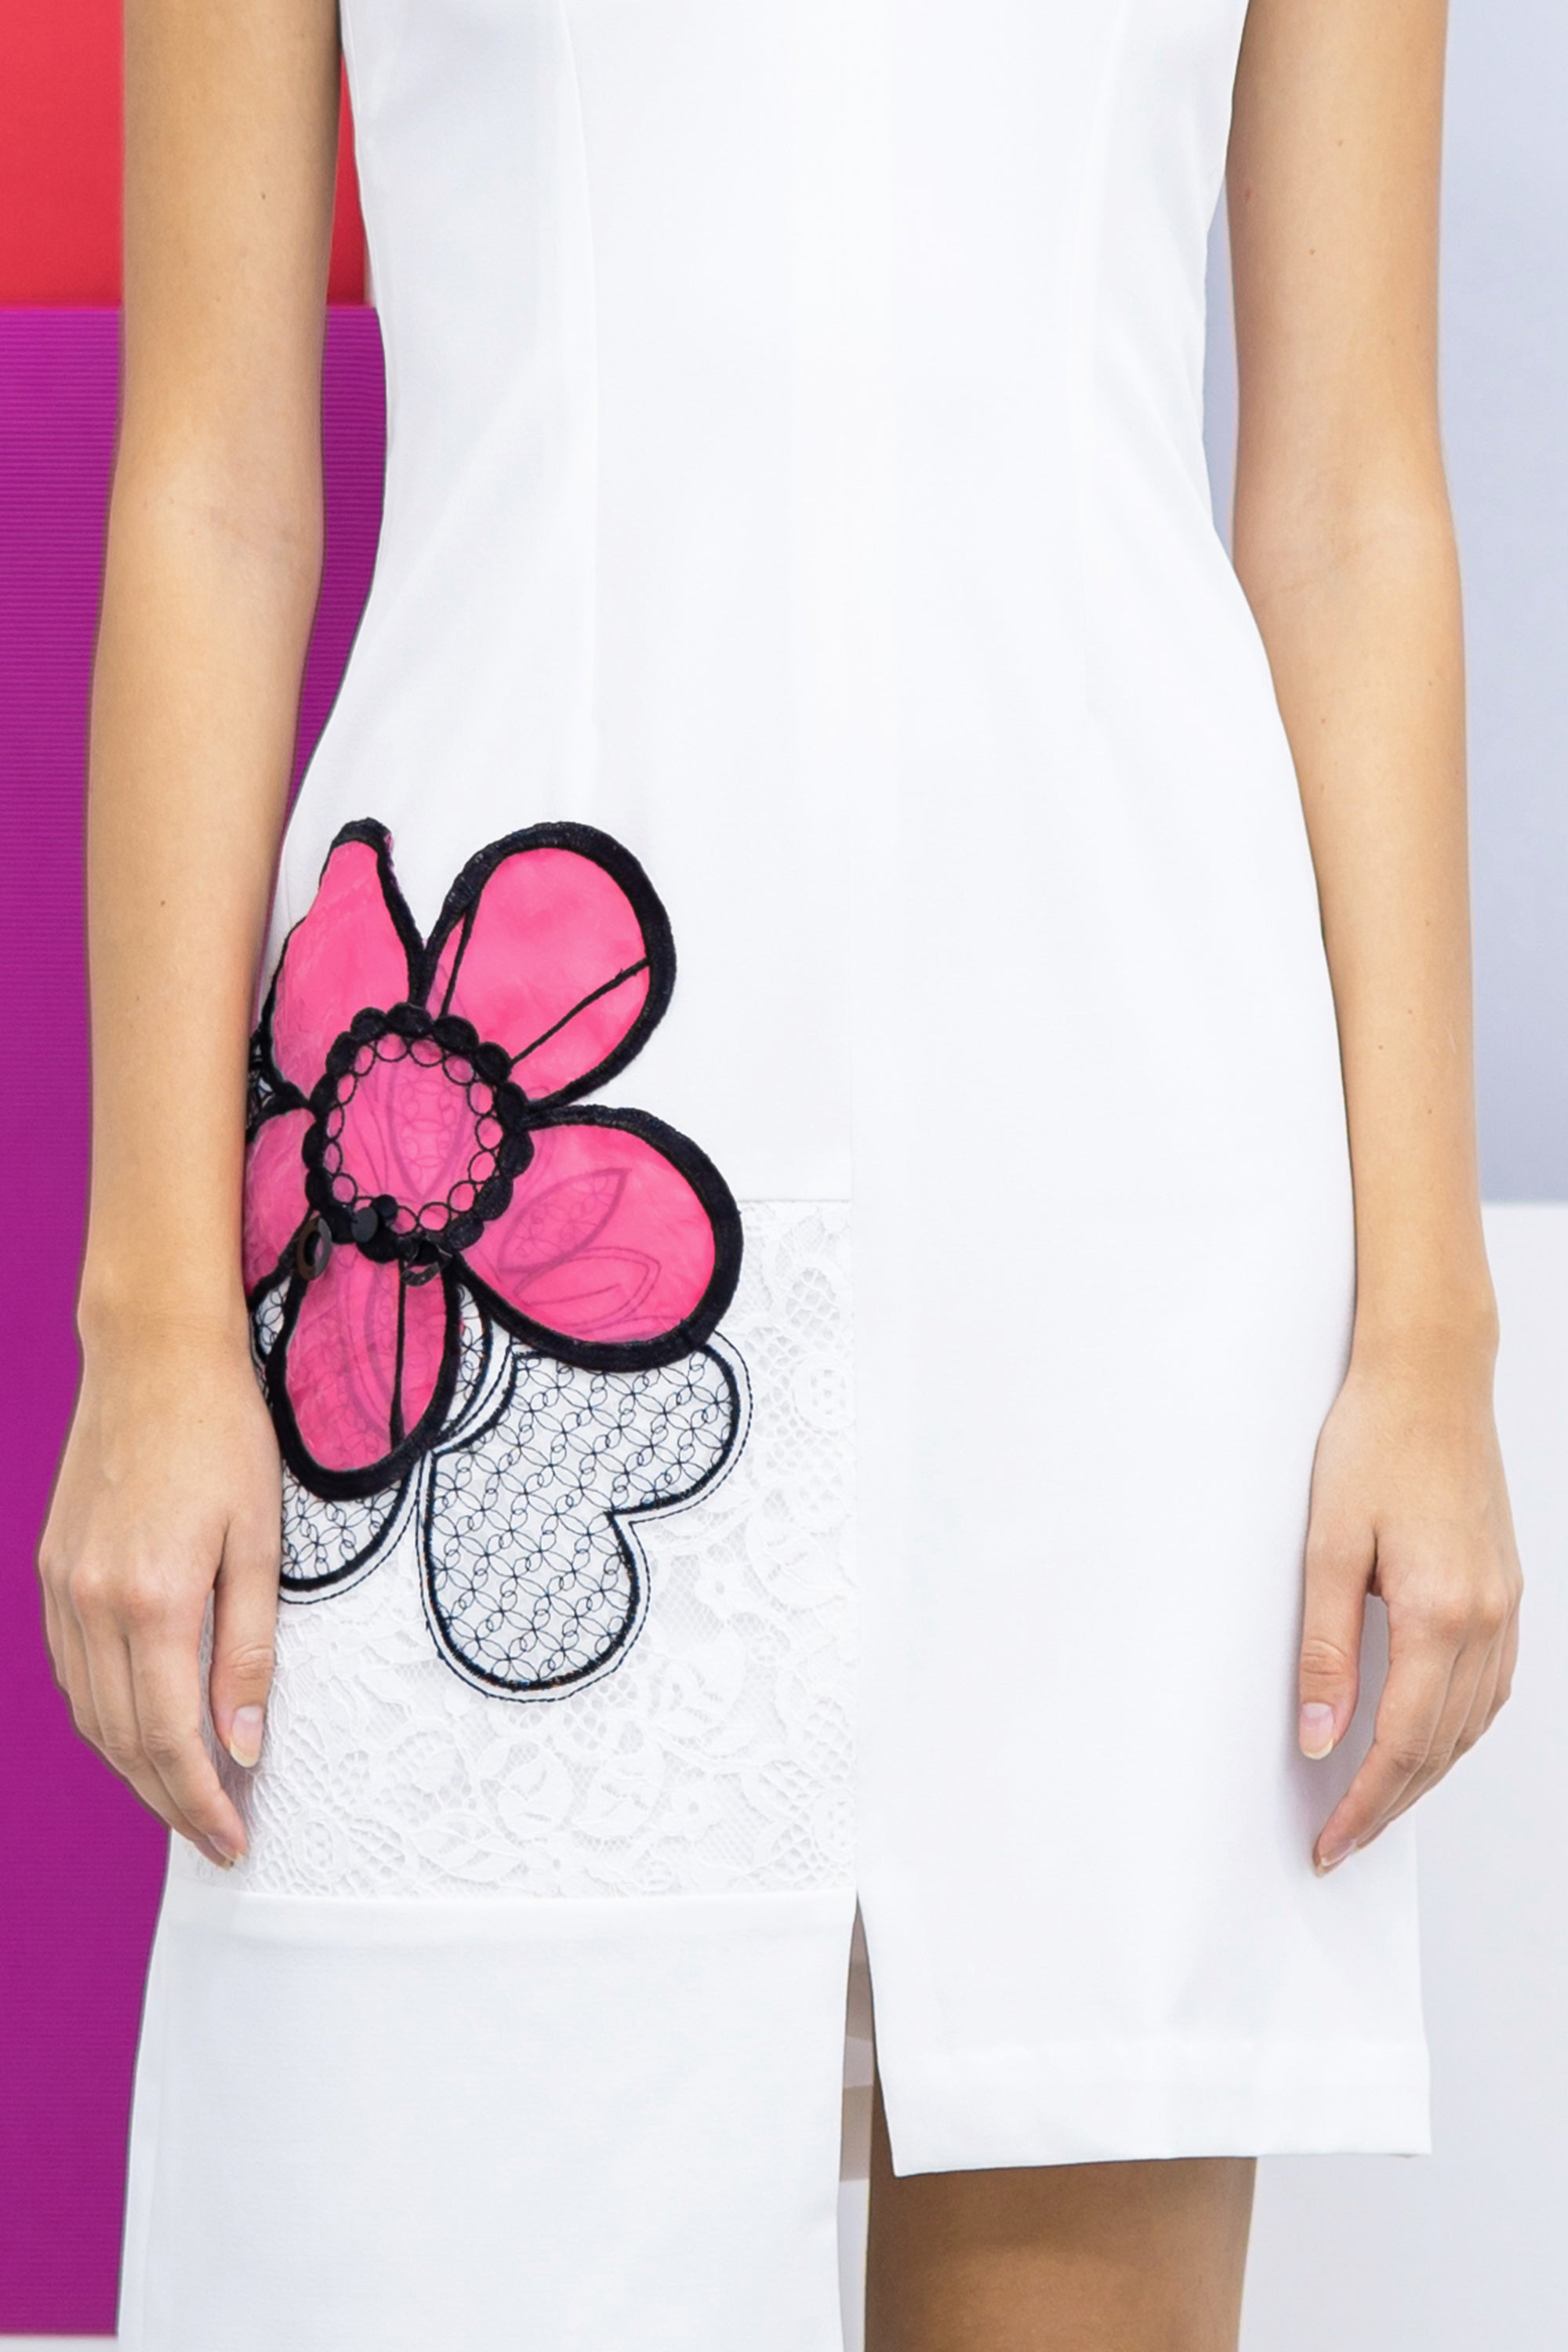 Sleeveless straight cut crepe dress- white with pink appliqué